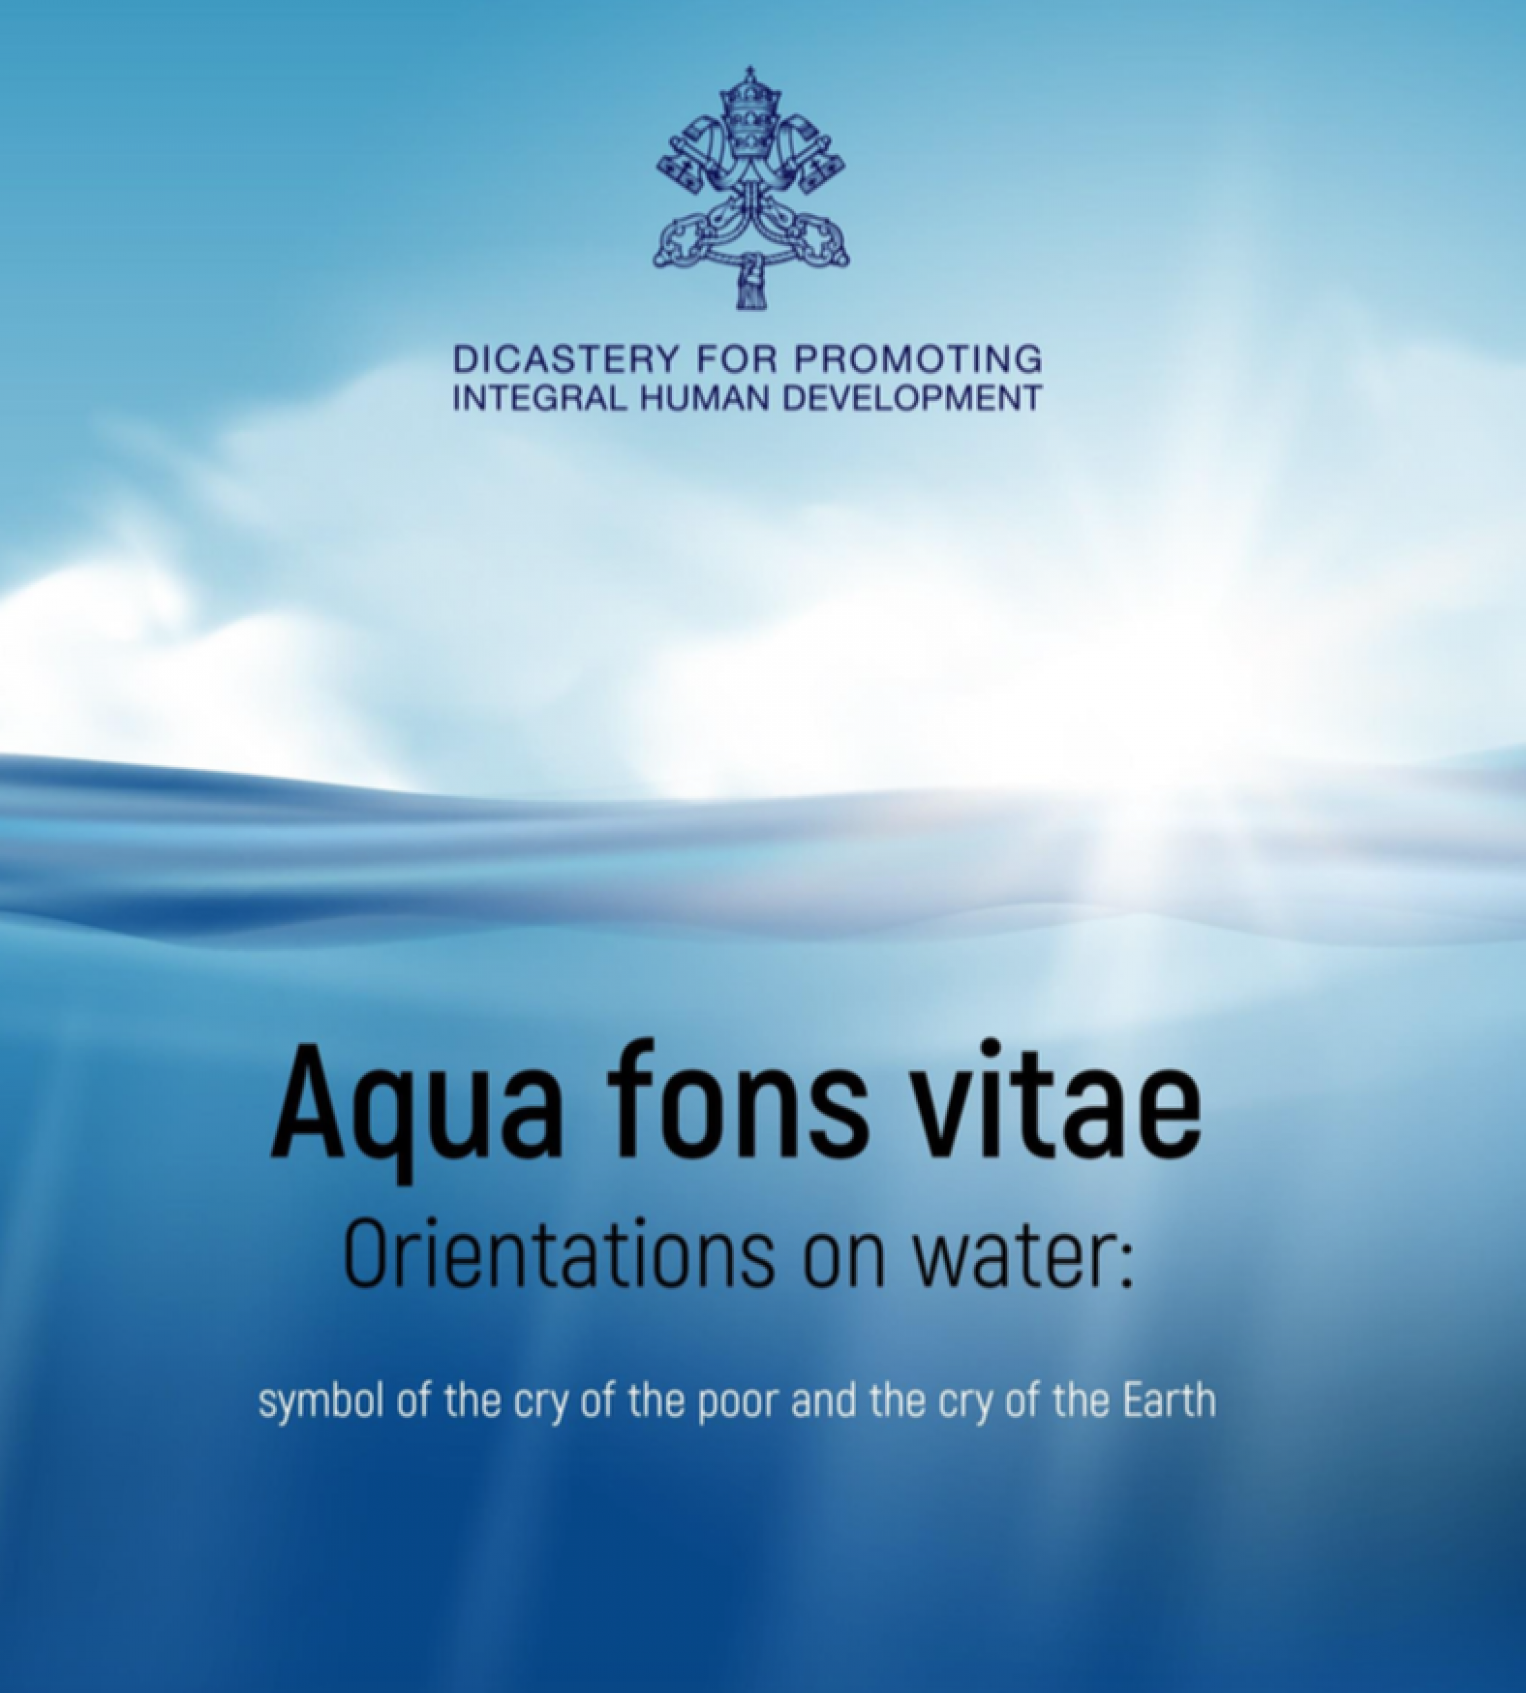 Aqua fons vitae. Orientations on Water, symbol of the cry of the poor and the cry of the Earth